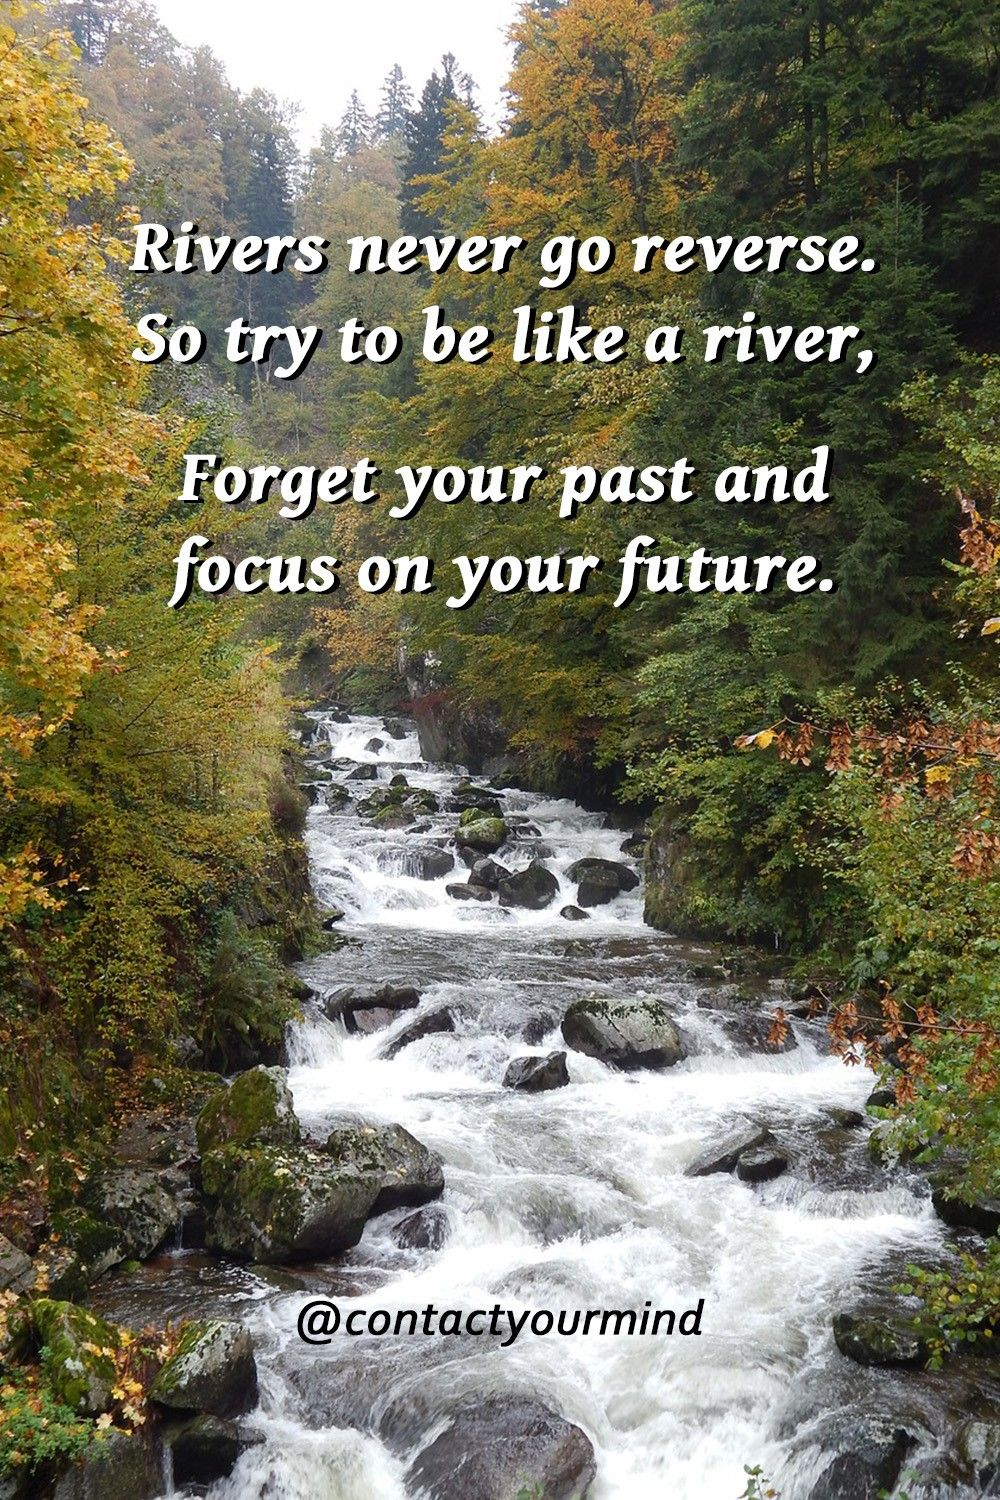 """Just because the past didn't turn out like you wanted it to,  doesn't mean your future can't be better than you've ever imagined.  Your past has strengthened you, so now its time to focus on your future.""   #contactyourmind  #focus #nevergiveup #keepgoing #believe #believeinyourself #quotes #lifequotes"